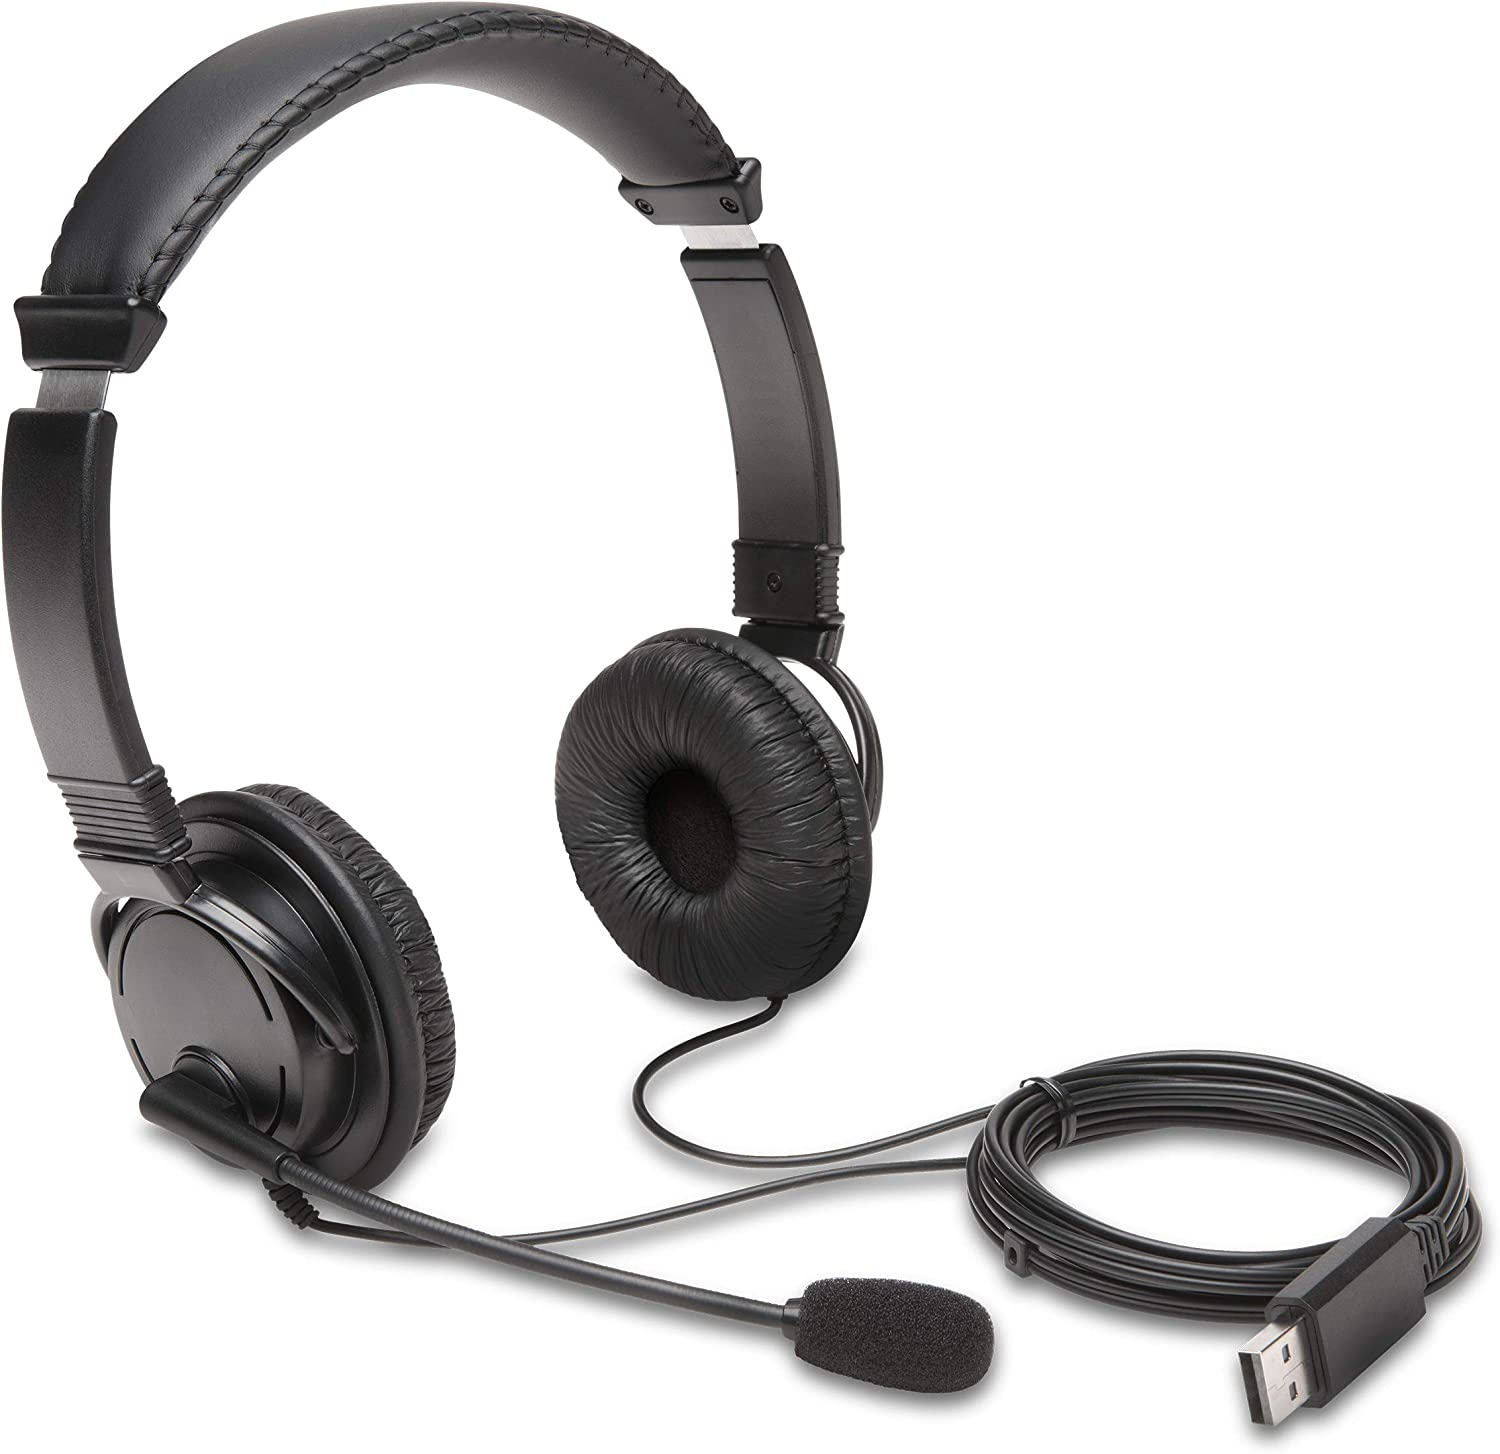 Kensington USB Hi-Fi Headphones  this one is he best headphones for the small heads if you head is small and no one headphones is not fit on your heads son this one is the best headphones for you